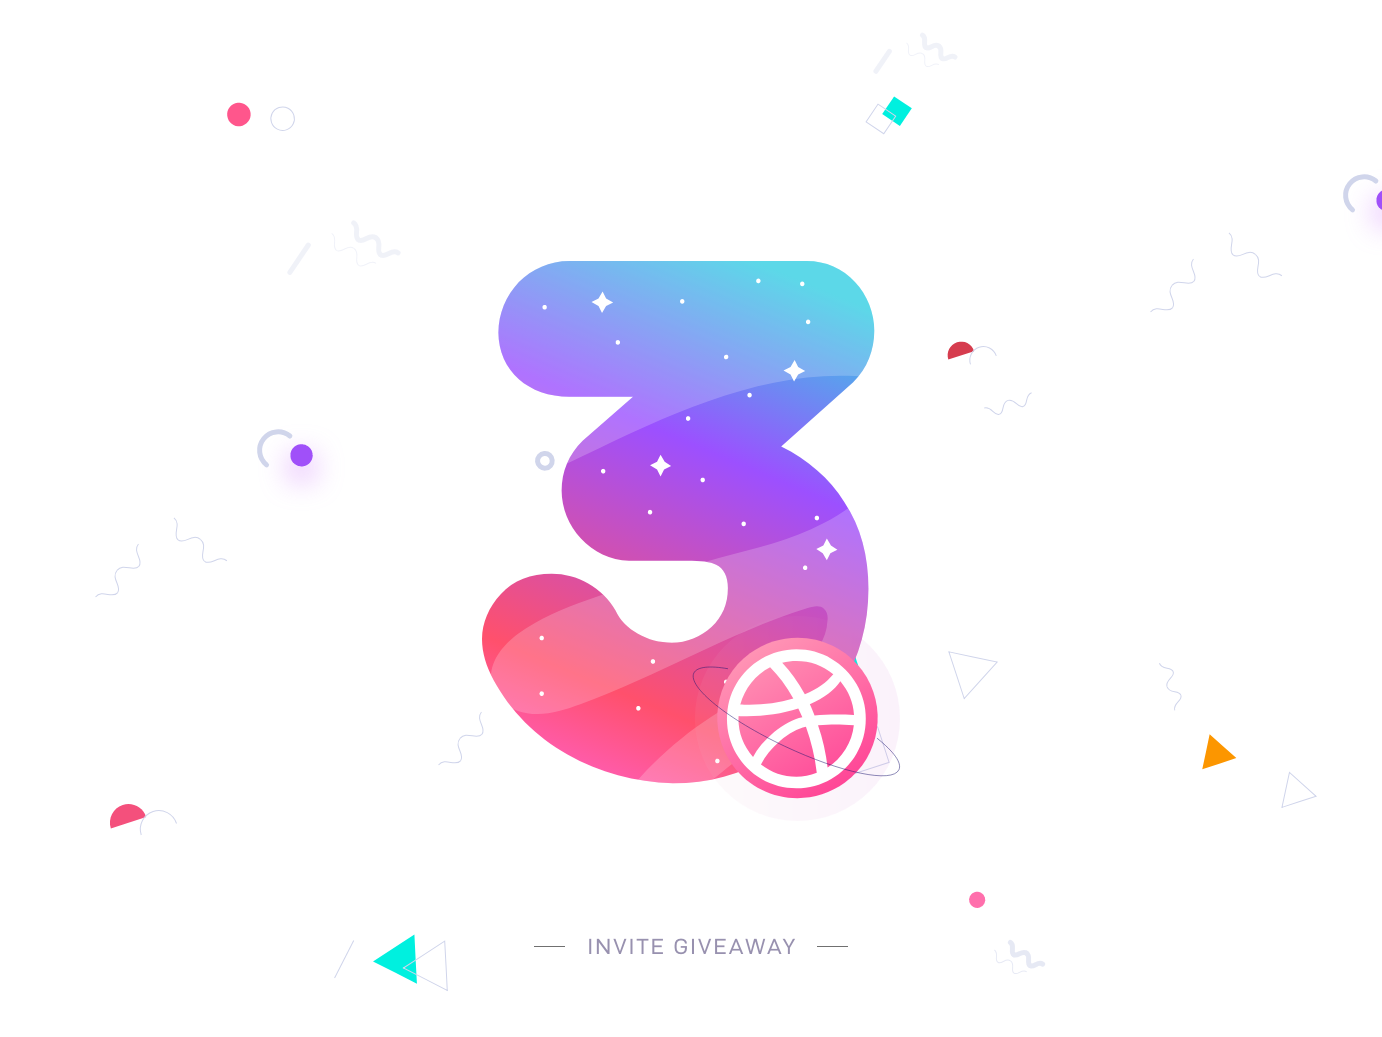 3 Dribbble Invites interface ios typography vector illustration design colors apps minimal giveaway 3 invitation ux ui dribbble invite